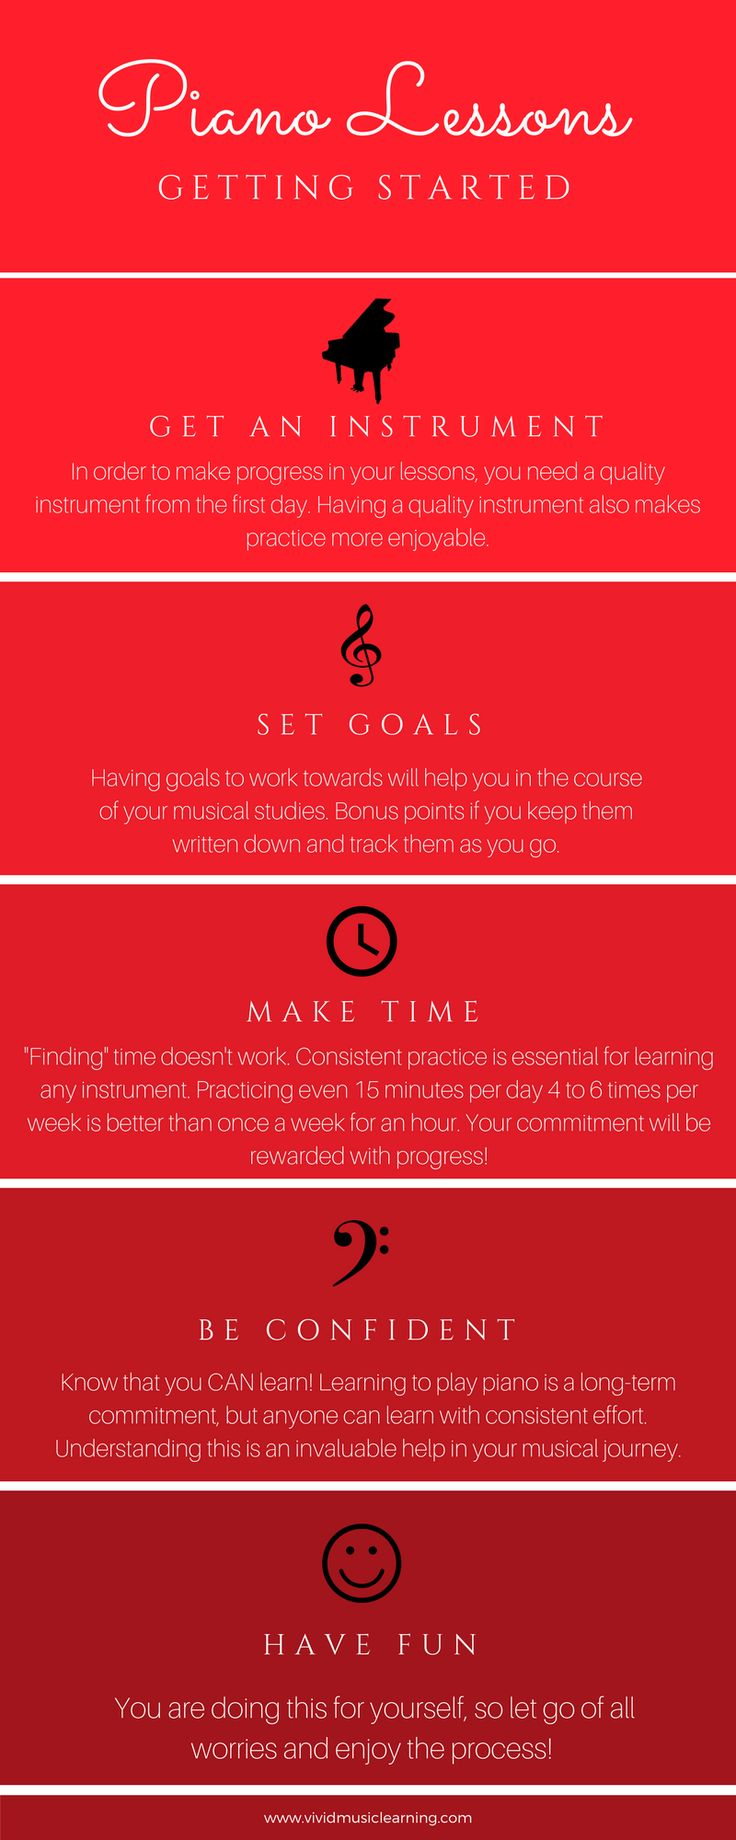 174 best piano images on pinterest sheet music classical music how to learn piano an infographic for getting started have you always wanted to learn hexwebz Gallery